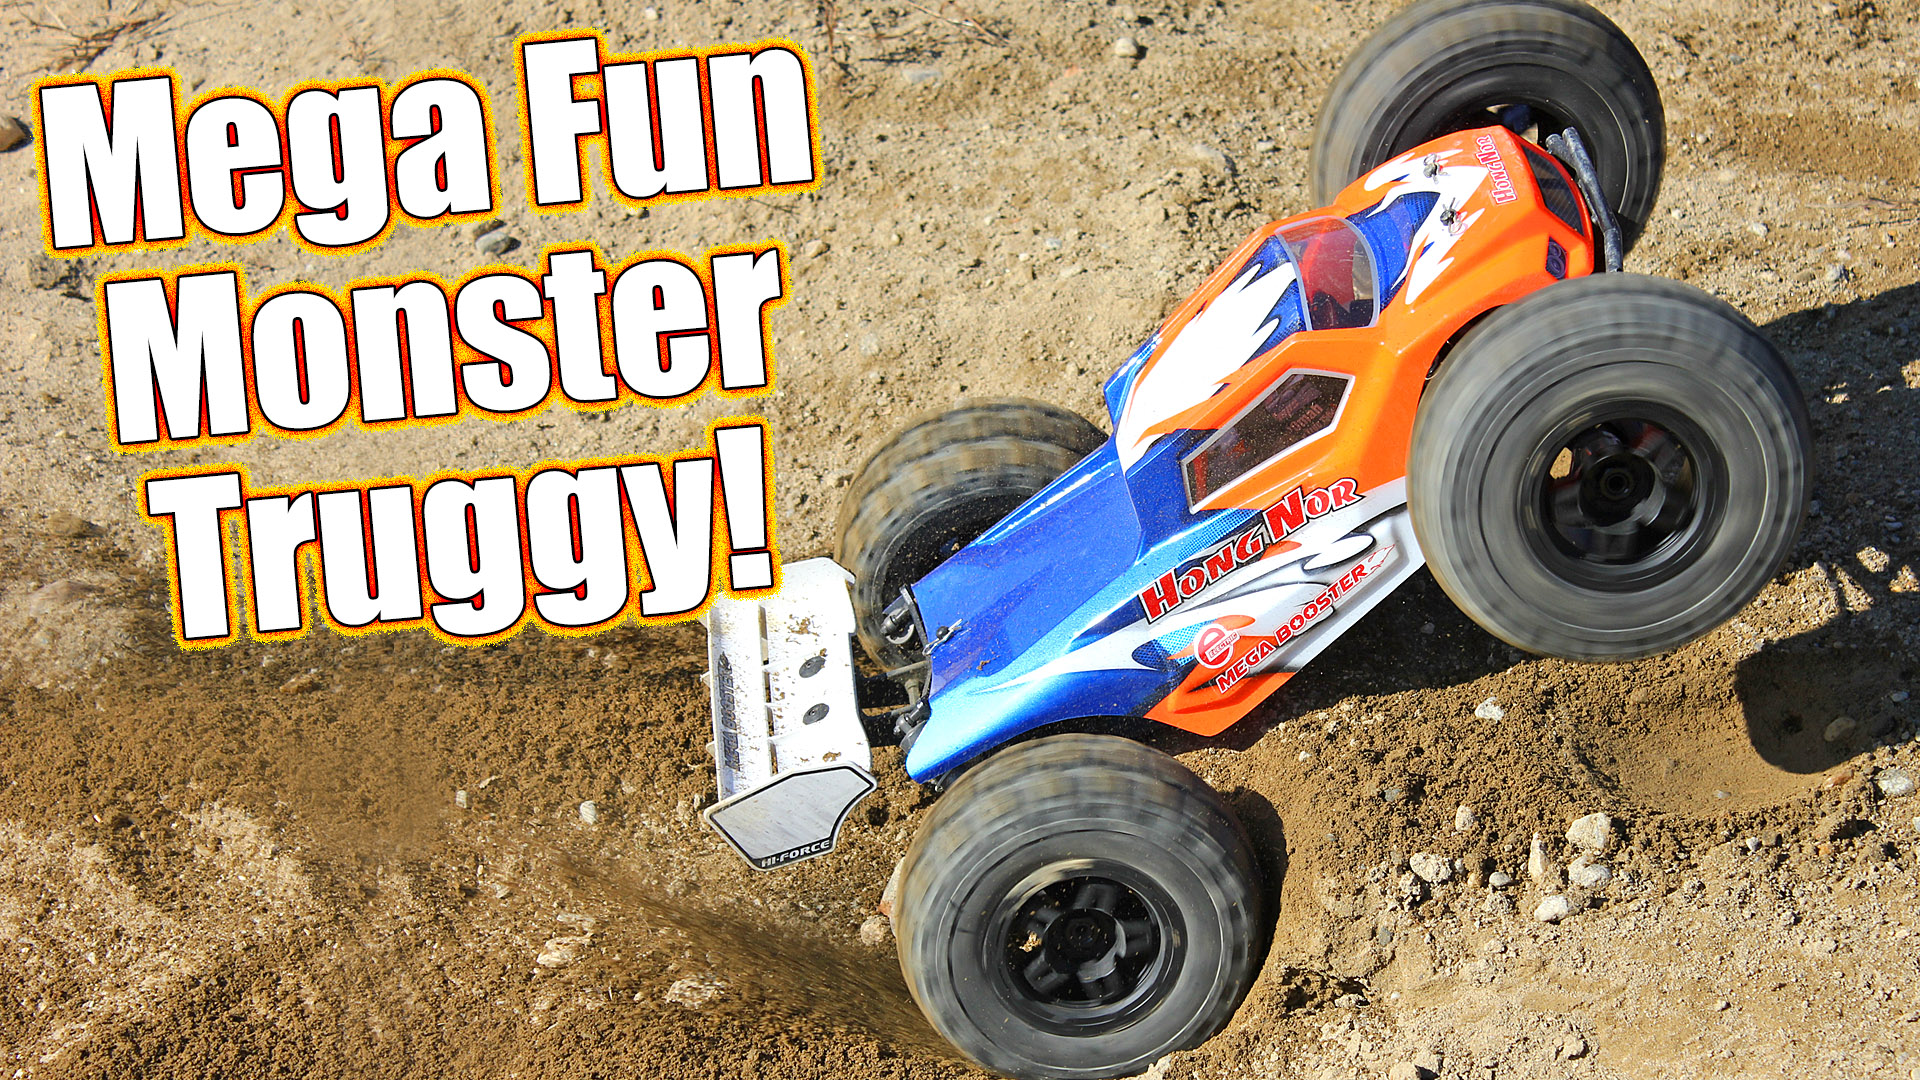 Hong Nor Mega Booster E1 Truggy Review